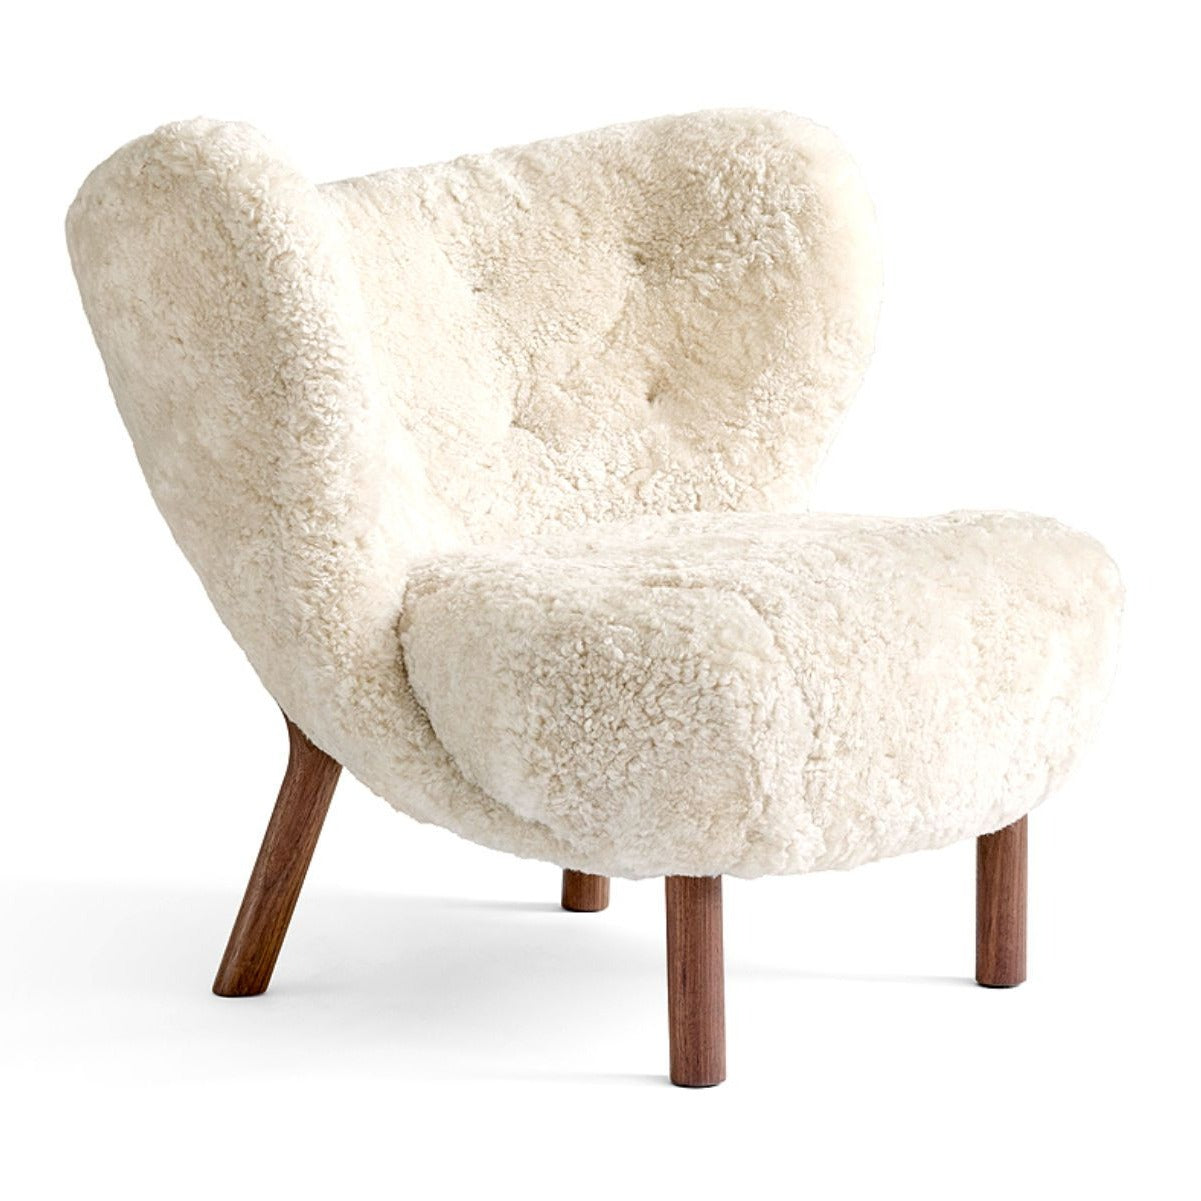 &Tradition Little Petra VB1 lounge chair, sheepskin 17mm moonlight